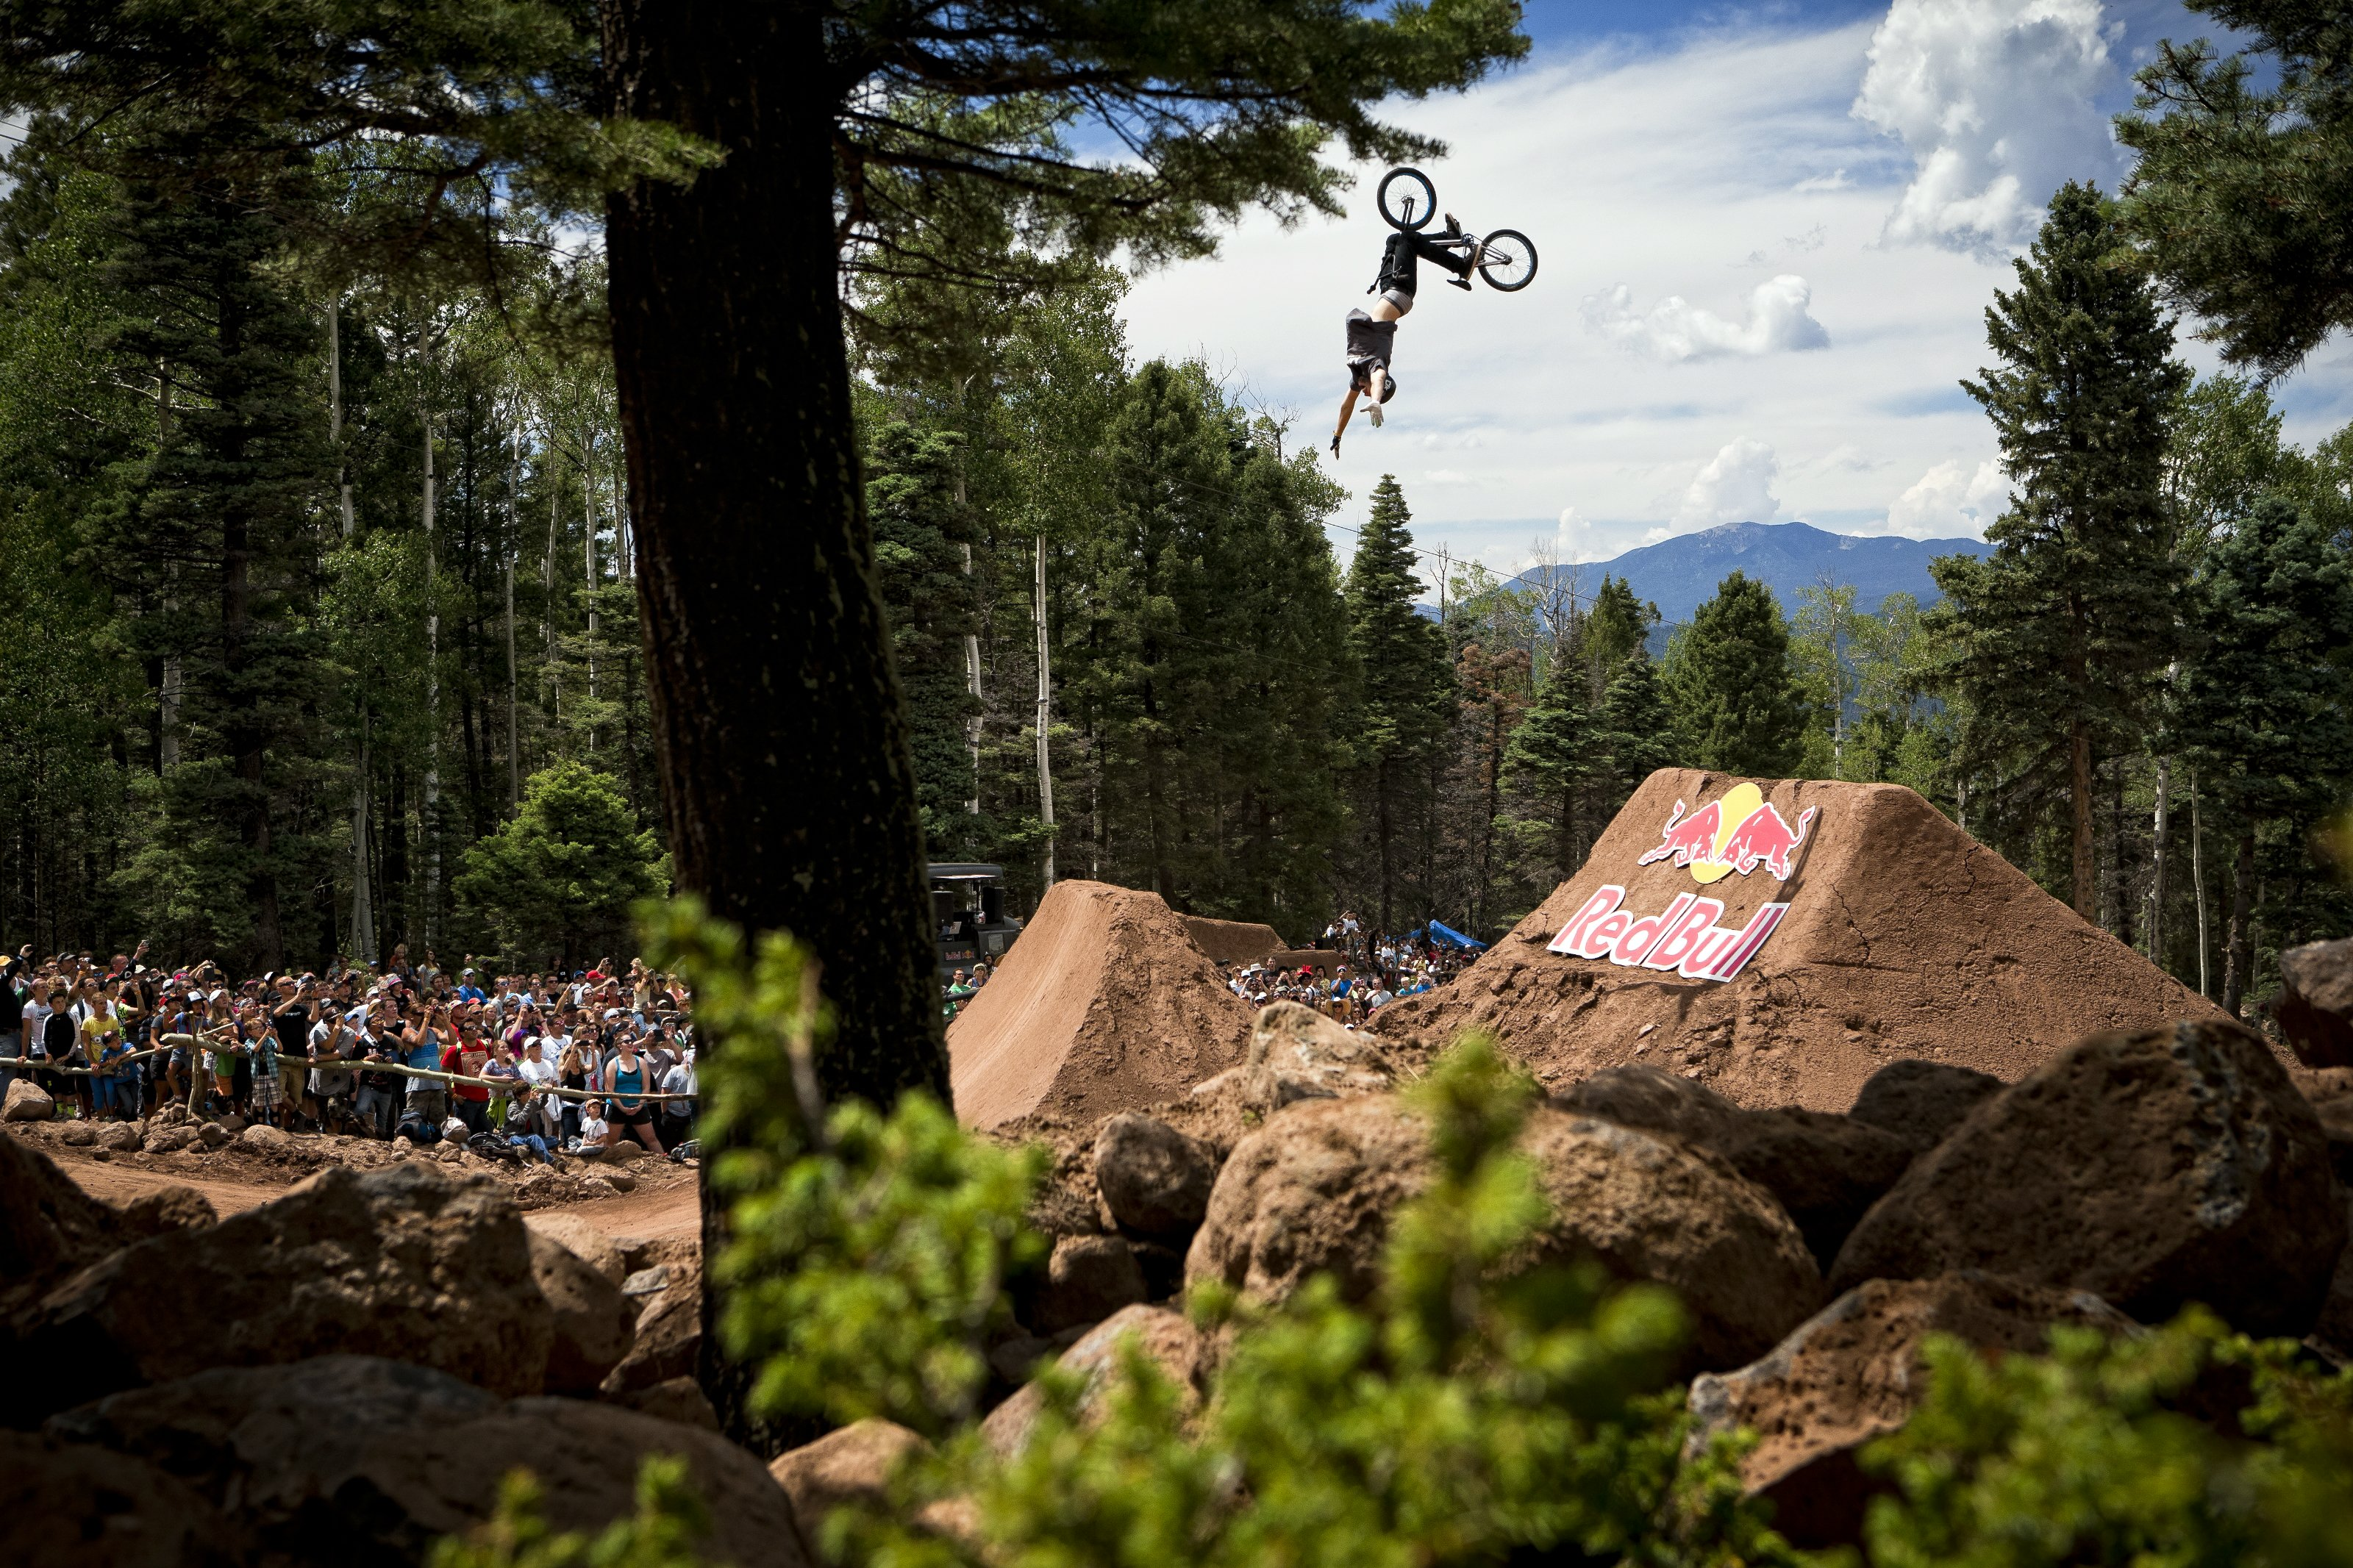 Ticket reservations available now for Red Bull BMX event in Brevard